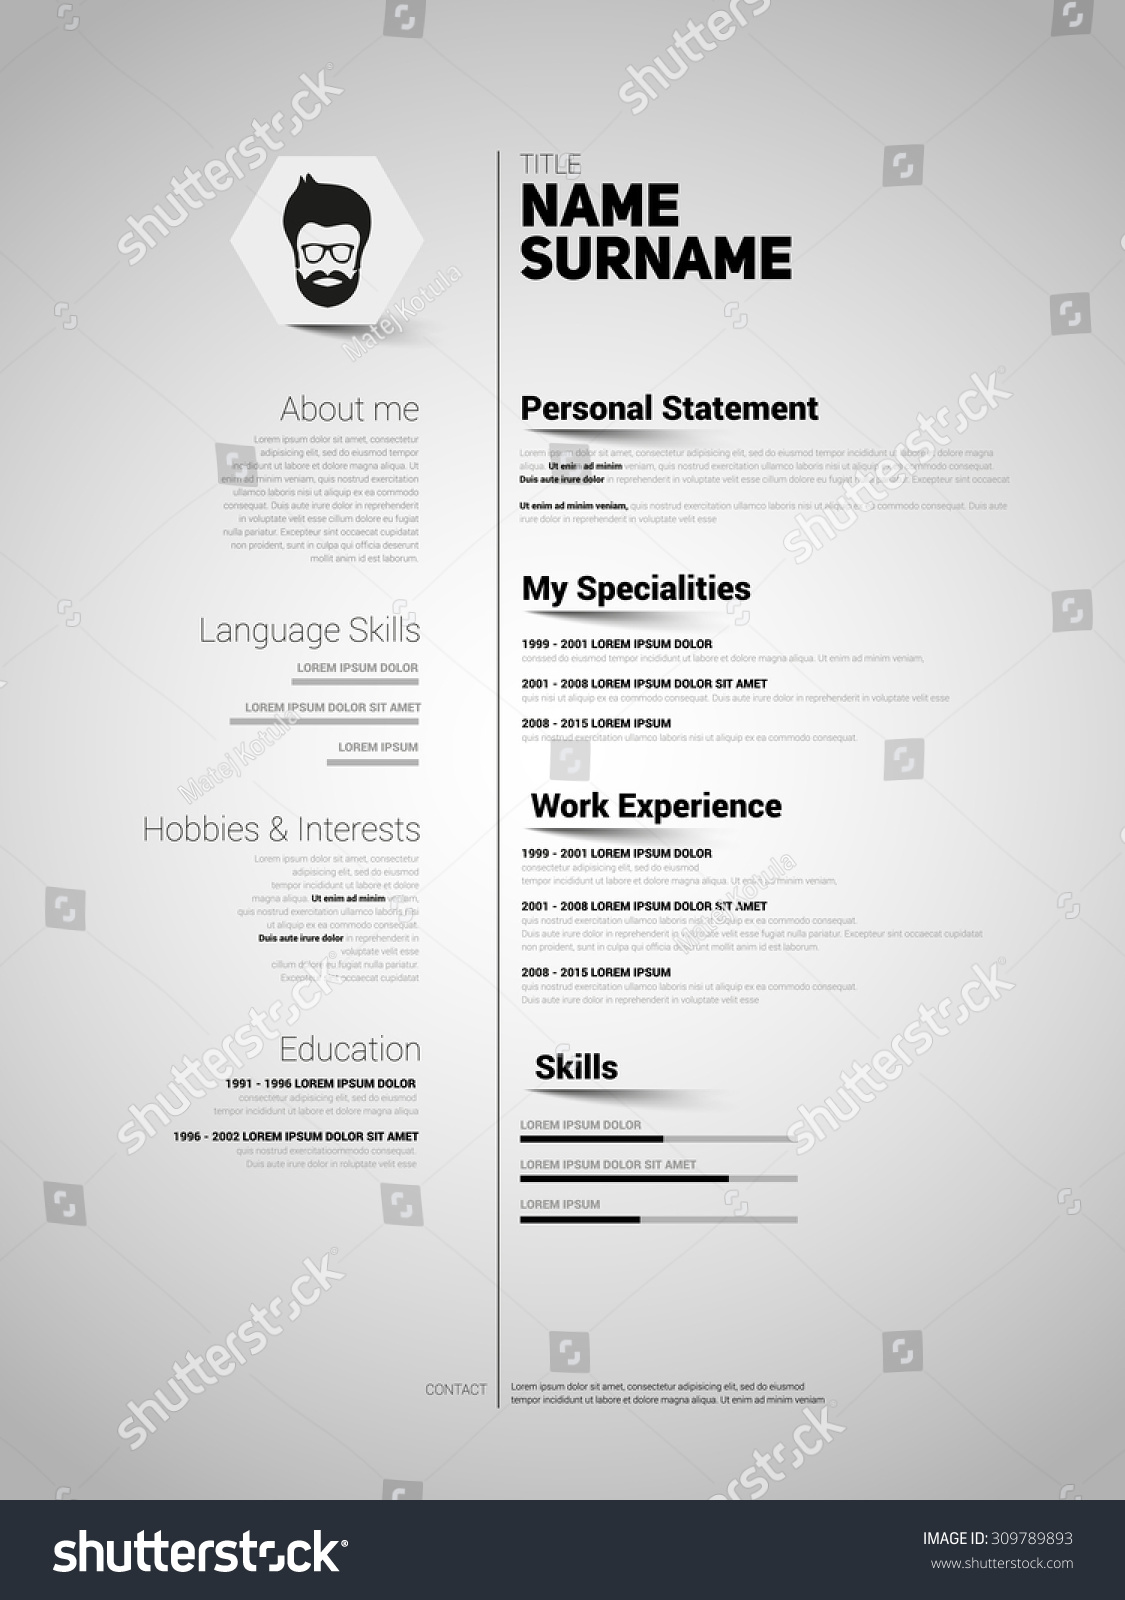 Minimalist CV, Resume Template With Simple Design, Vector  Minimalist Resume Template